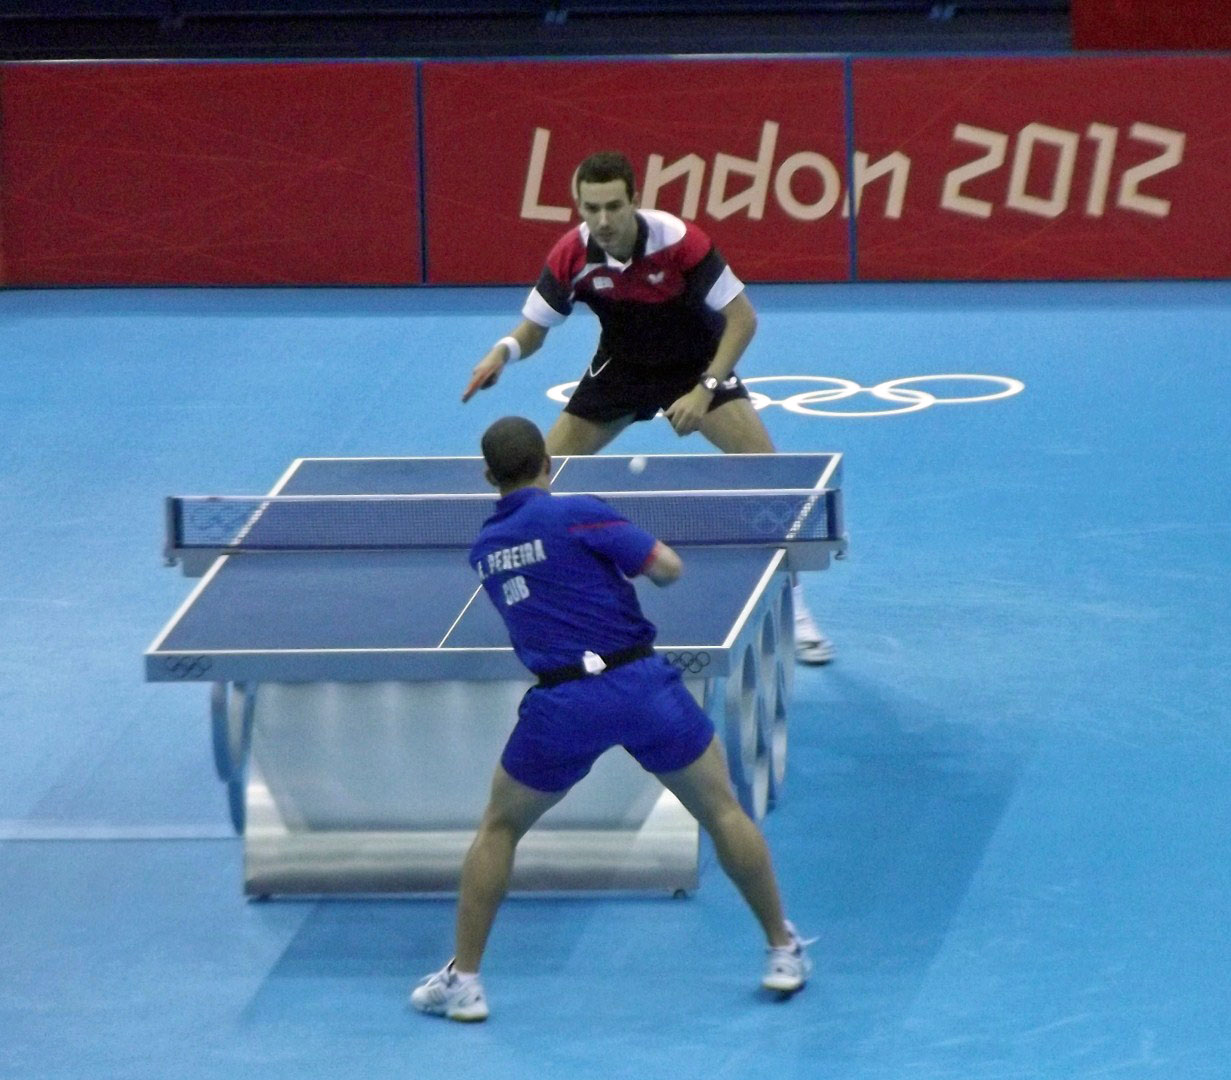 Two men playing table tennis